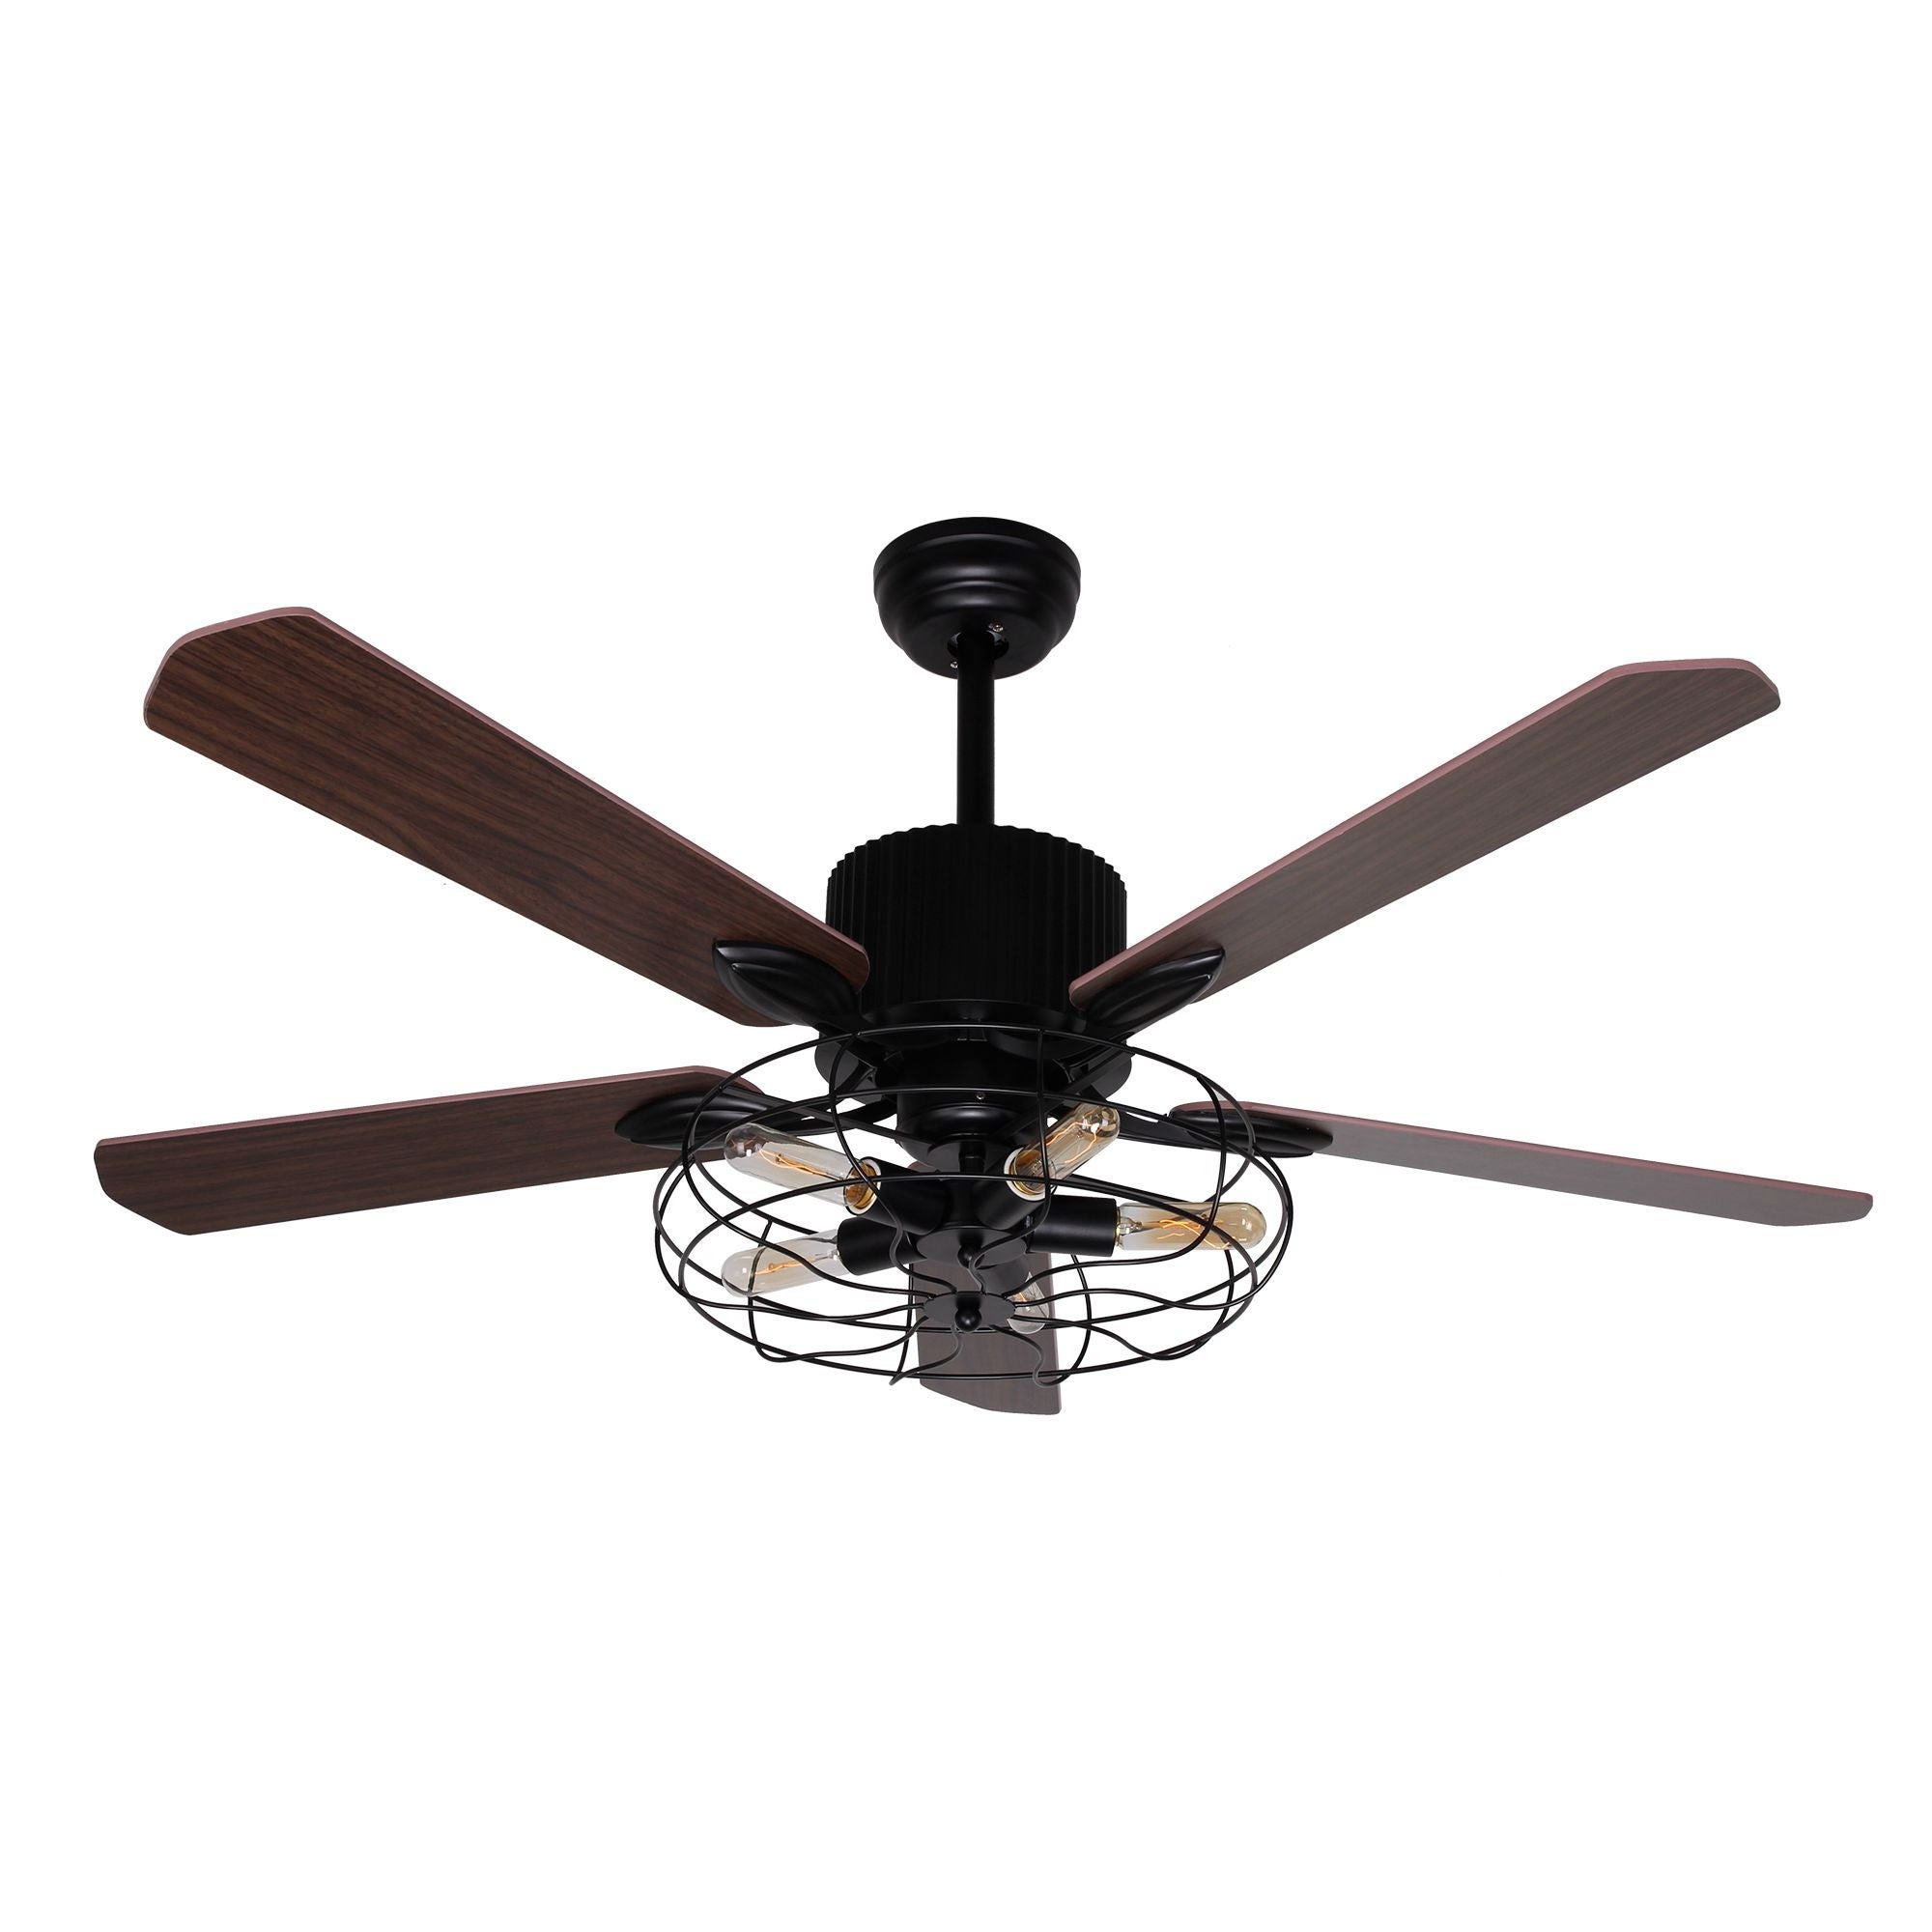 "Best And Newest Bennett 5 Blade Ceiling Fans With Remote Inside 52 Inch Brown Wood 5 Blades Cage Ceiling Fan With Remote – 52"" (View 7 of 20)"